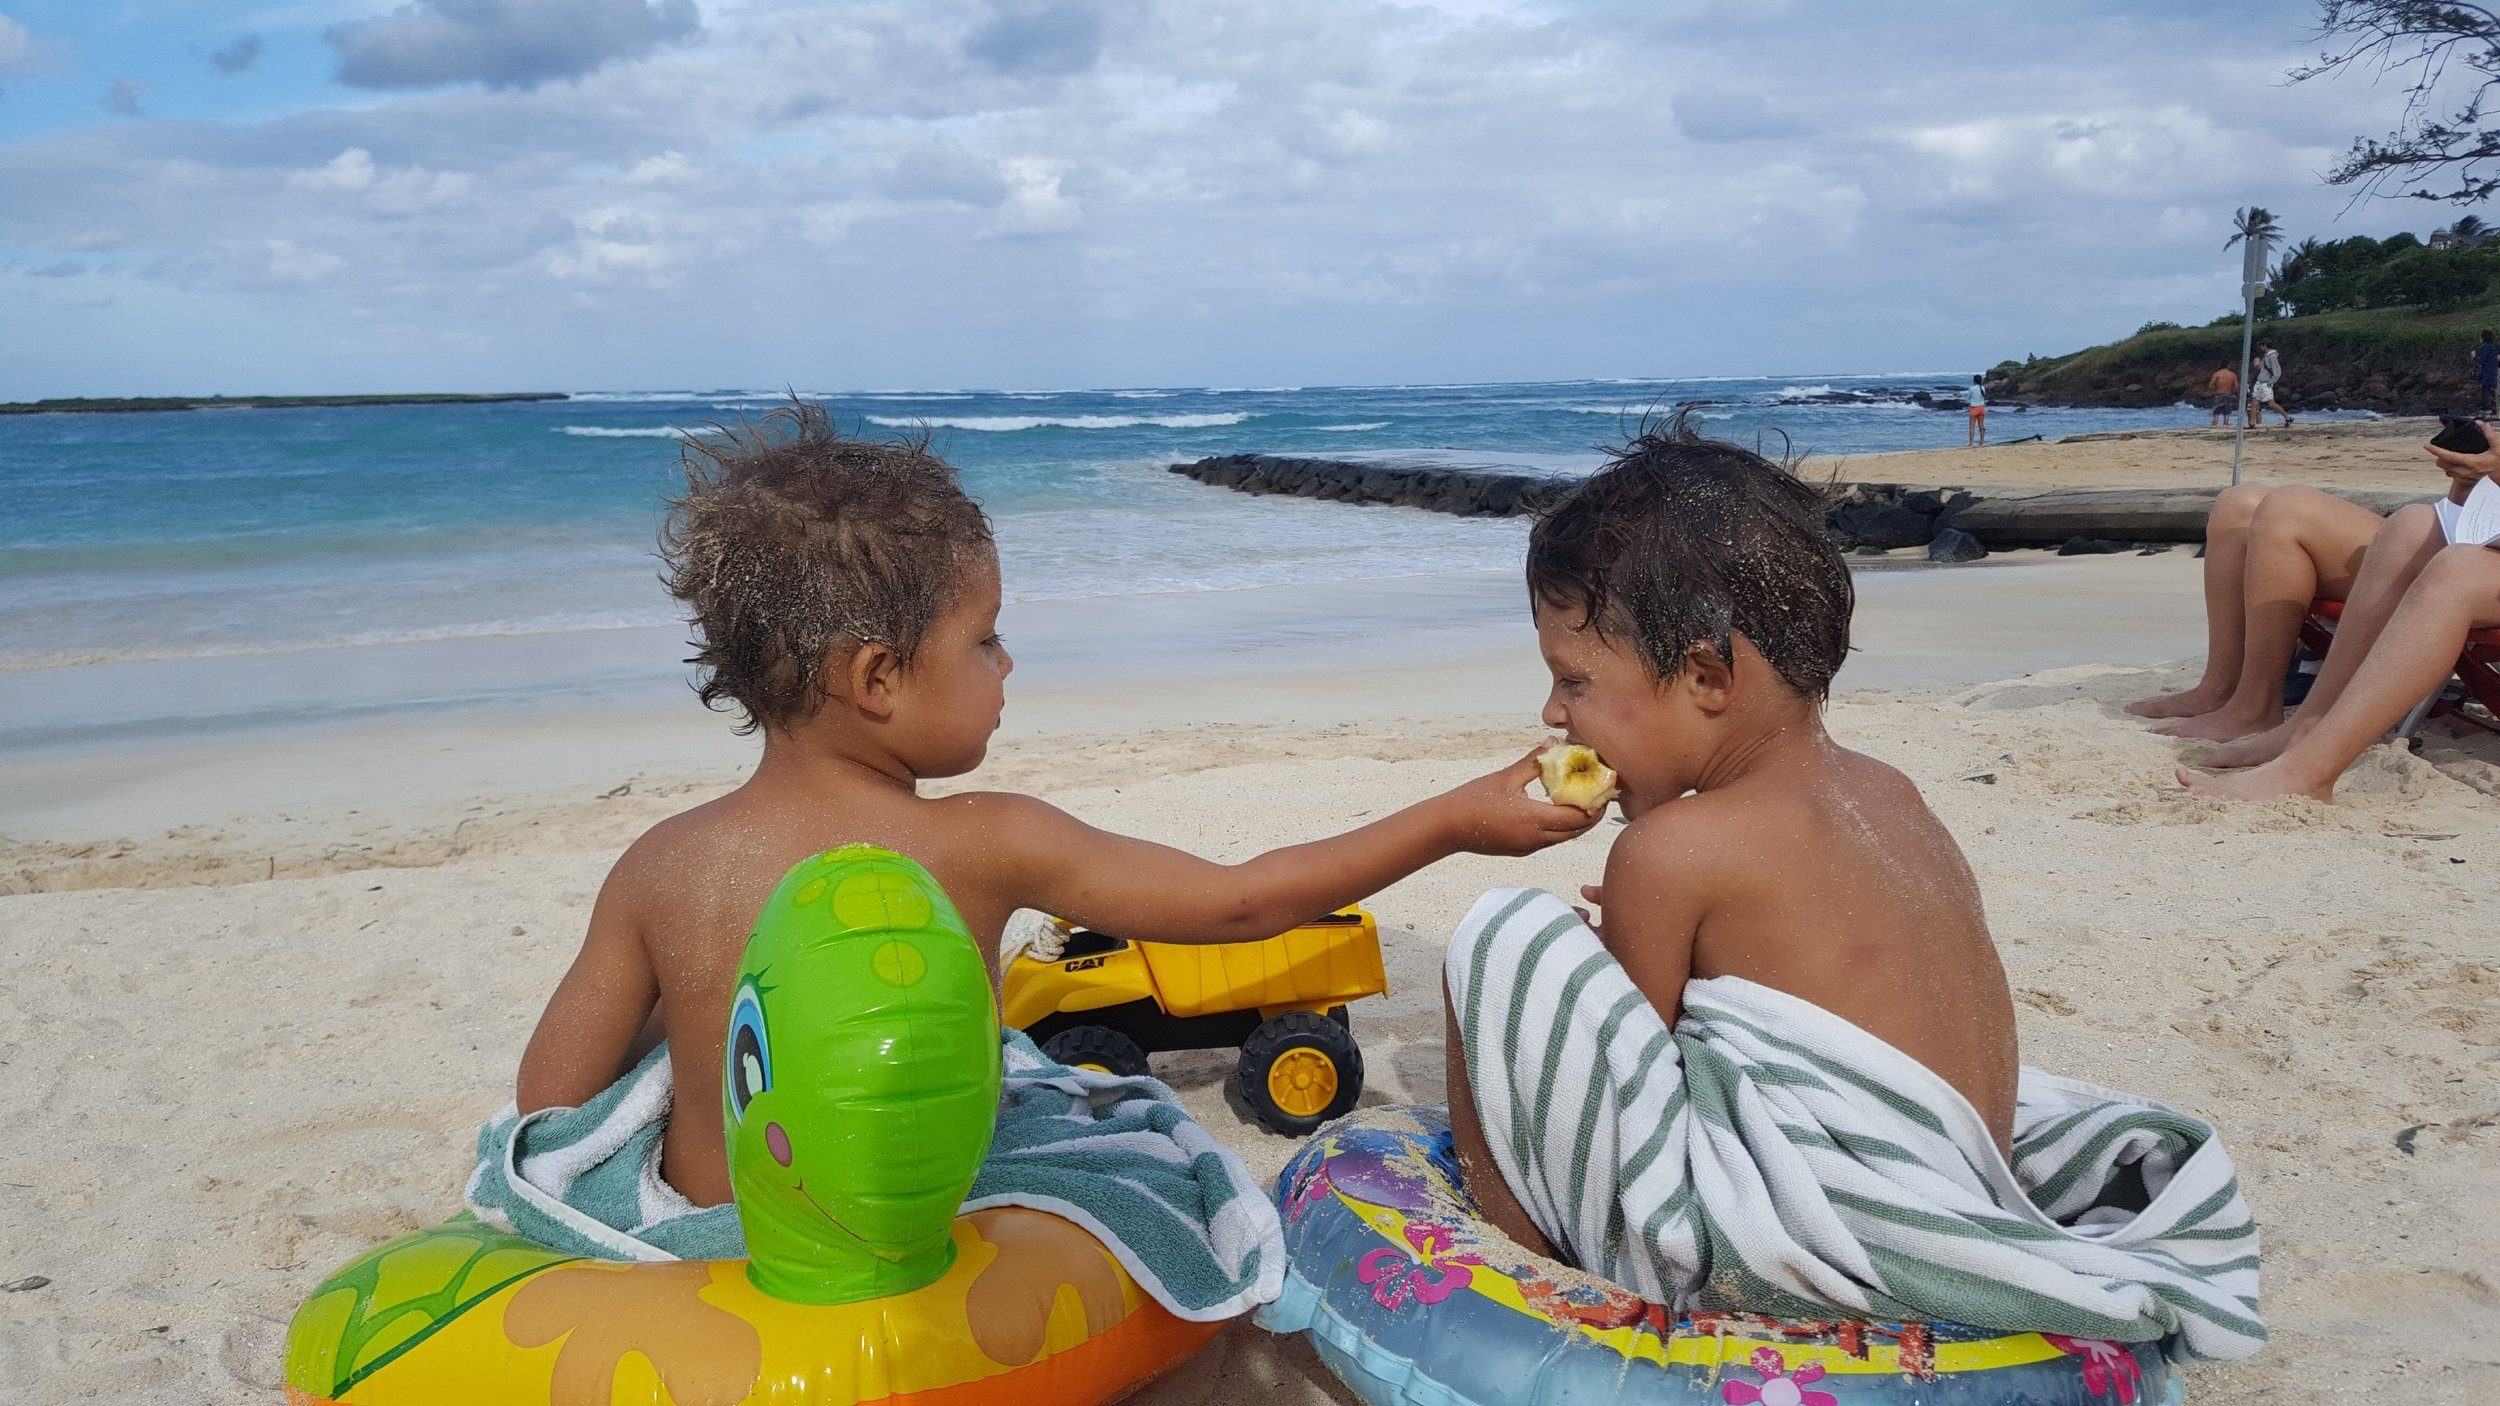 Omg, the sand on them. But seriously, these two are such best friends. I don't know what they'd do without one another.